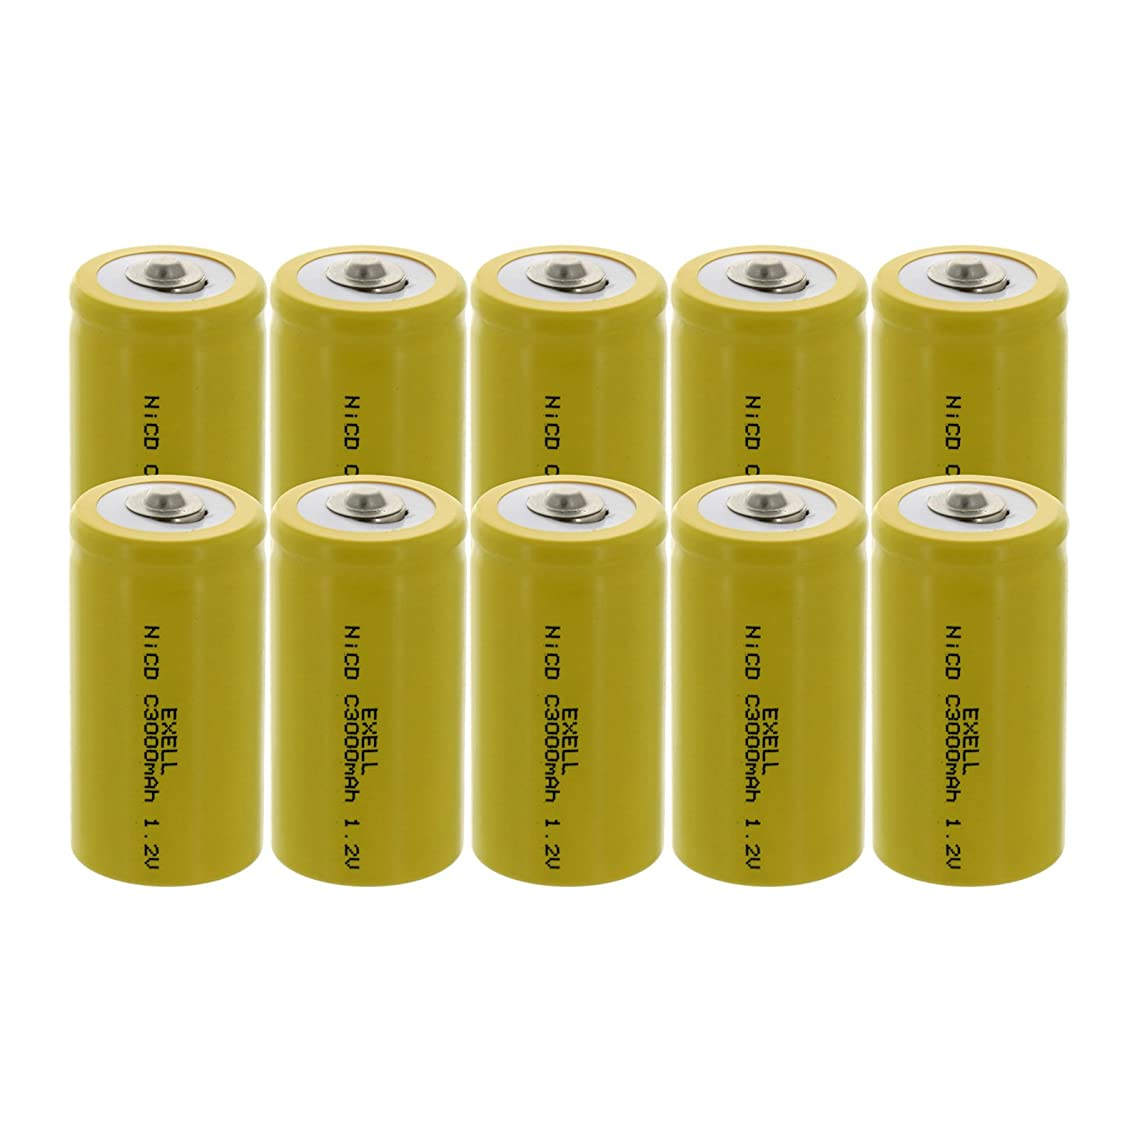 10x Exell C Size 1.2V 3000mAh NiCD Button Top Rechargeable Batteries for medical instruments/equipment, electric razors, toothbrushes, radio controlled devices, electric tools